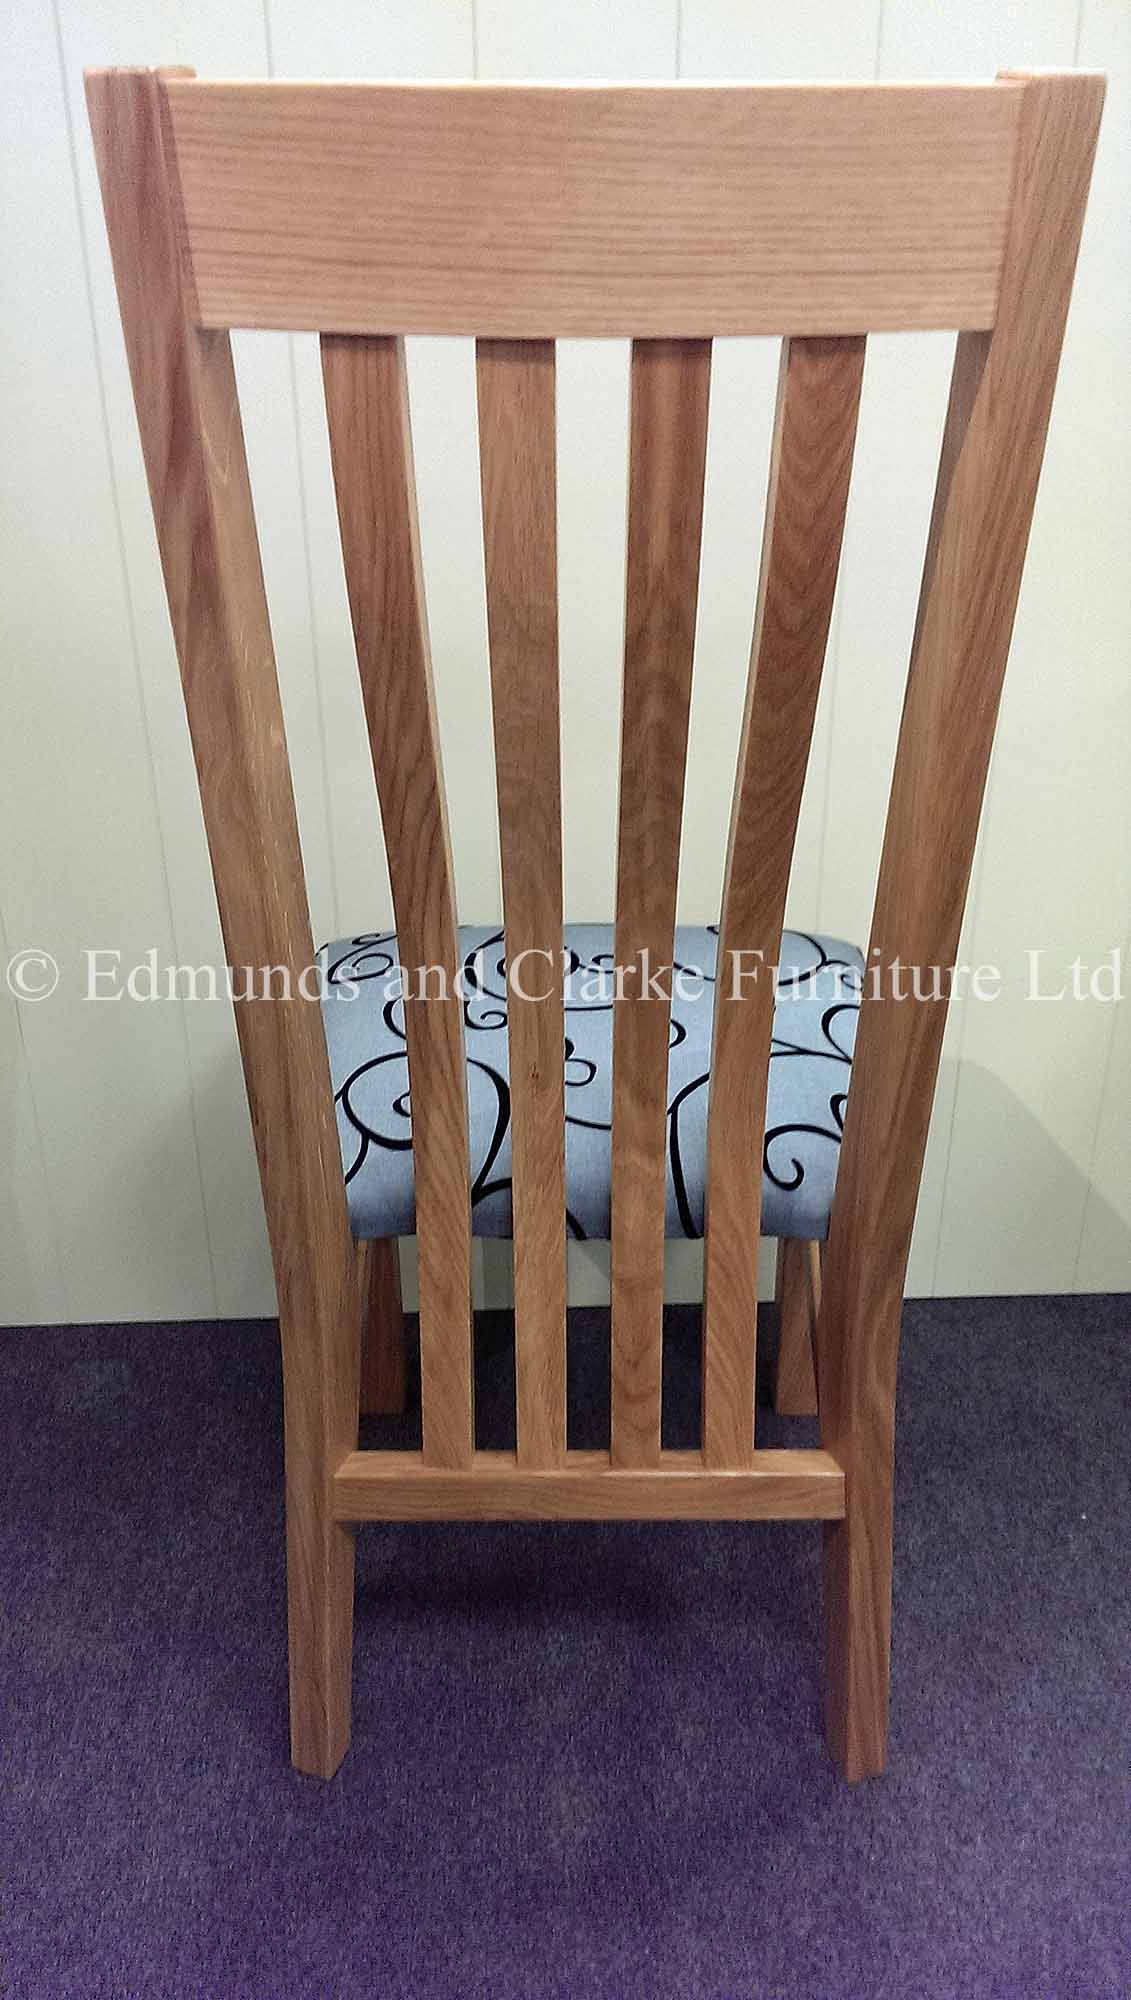 Harrington oak dining chair with slatted curved back support and fabric seat pad